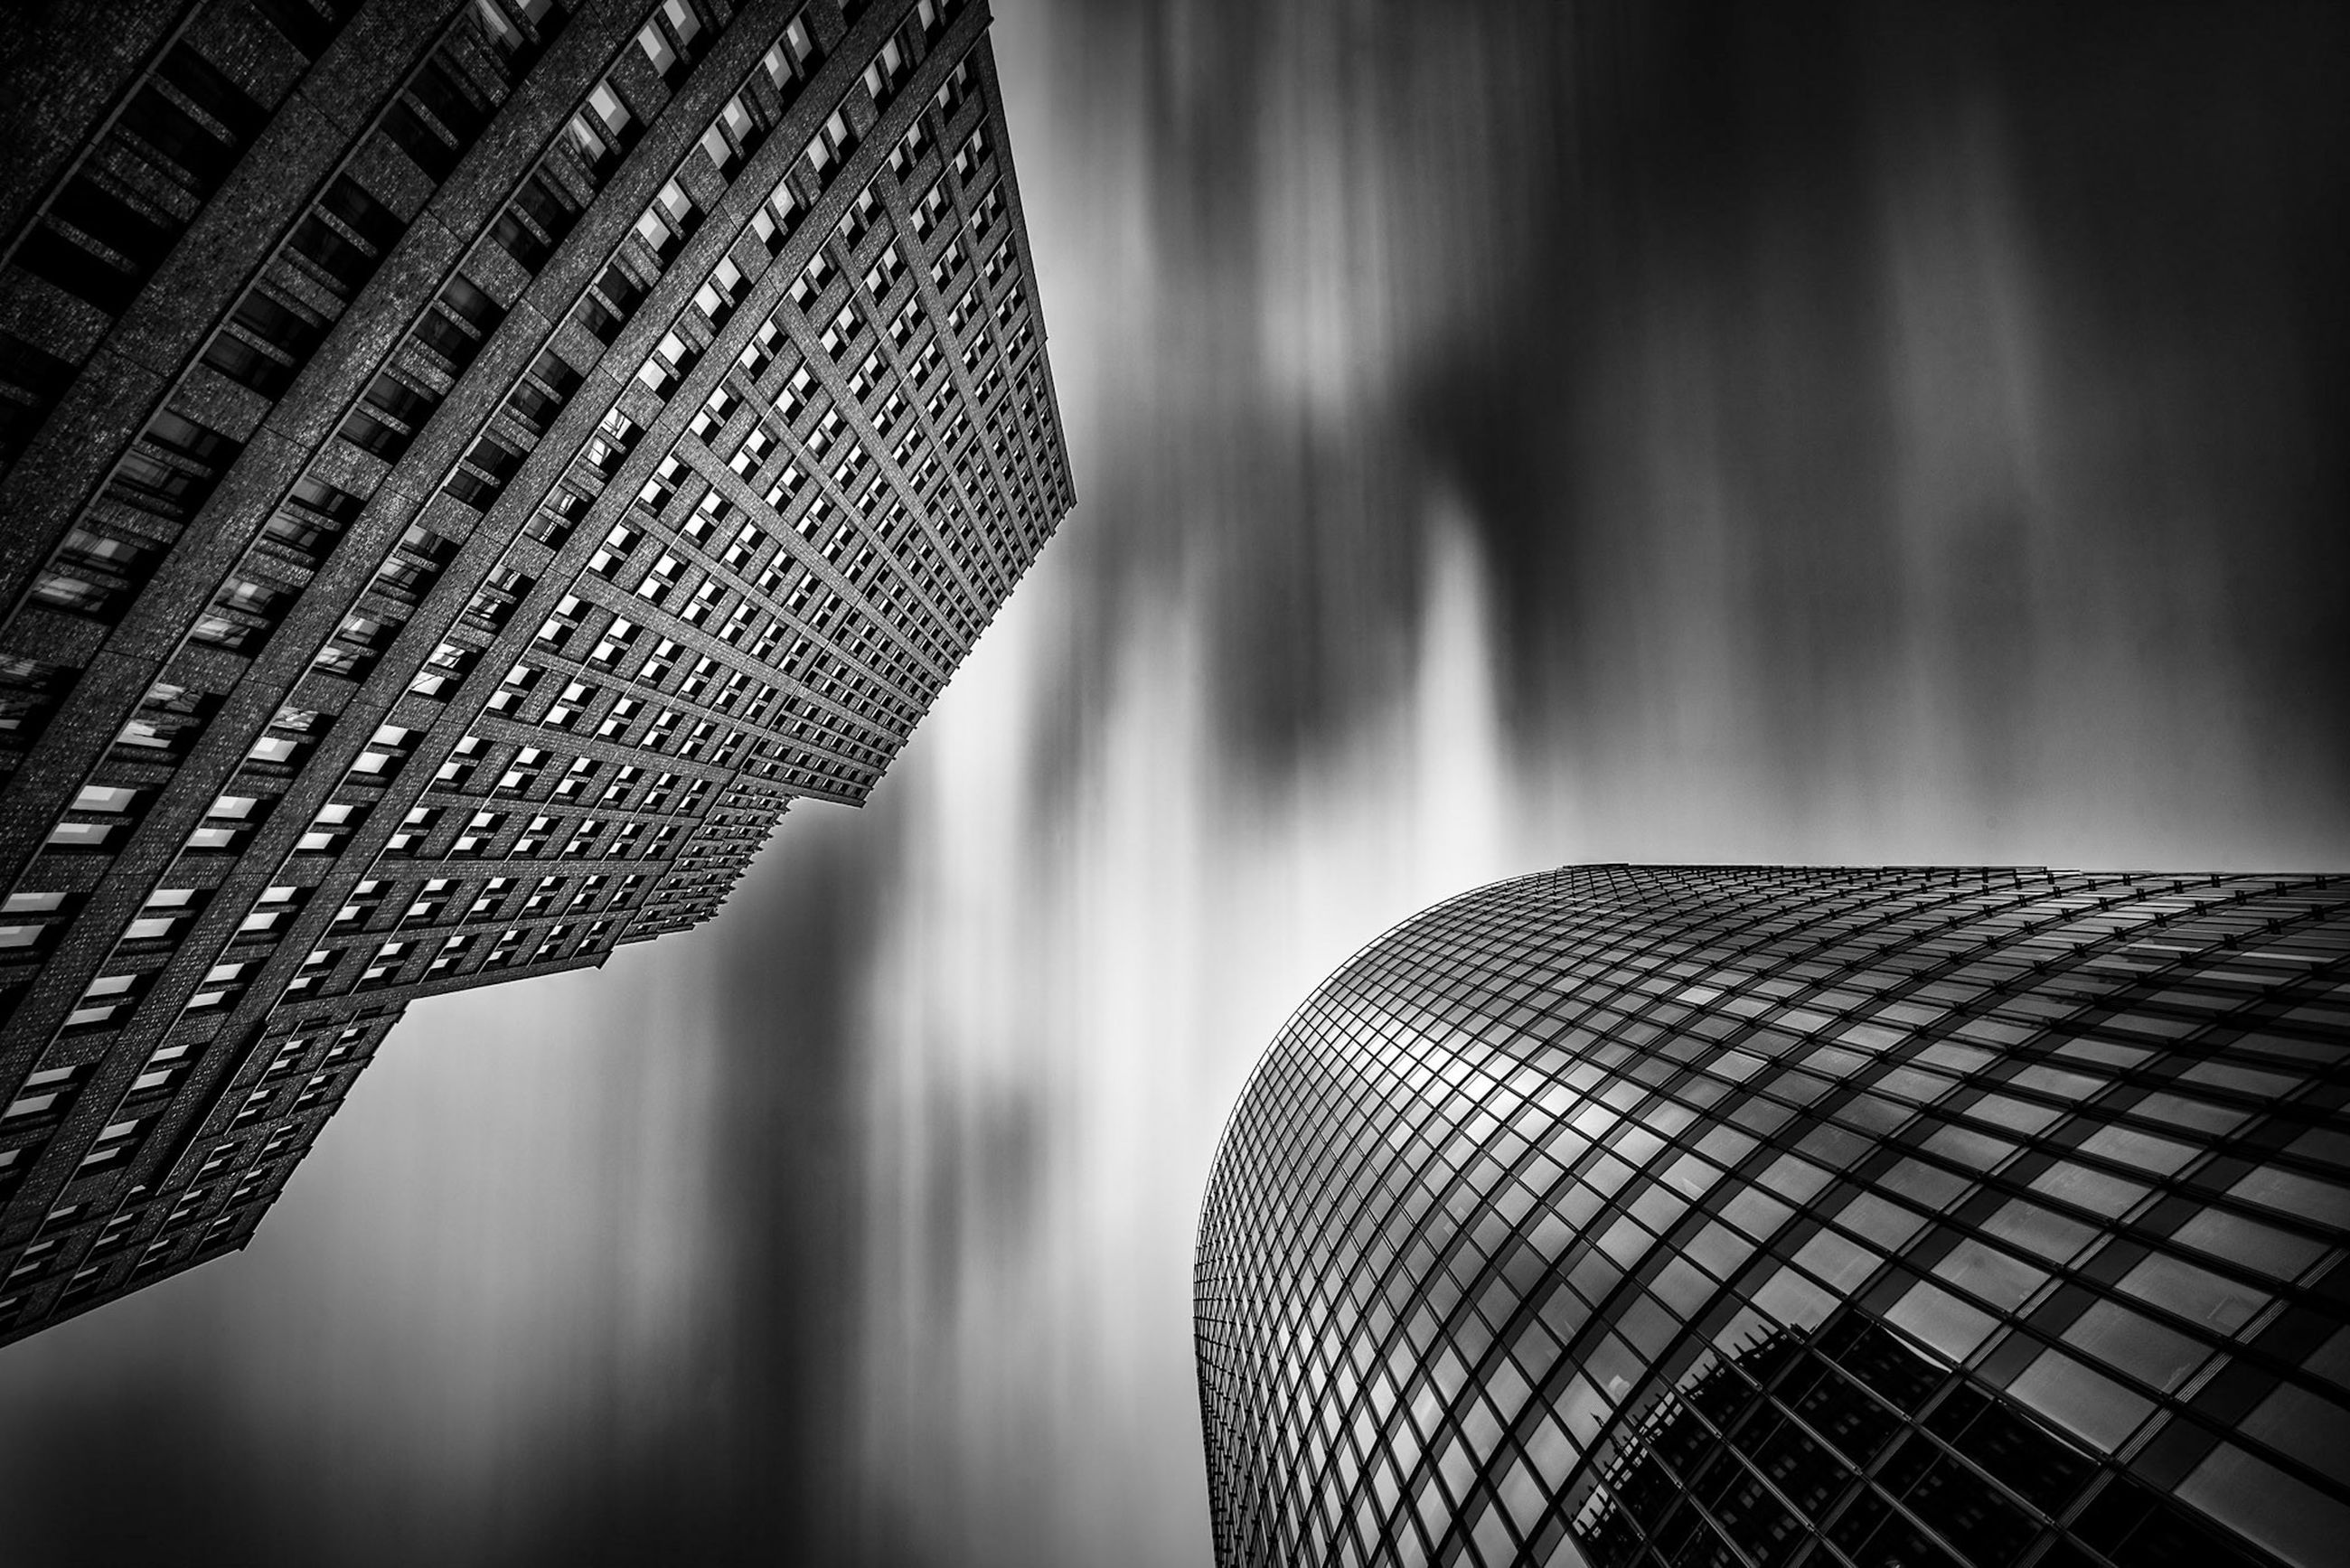 built structure, architecture, building exterior, building, office building exterior, modern, no people, day, office, tall - high, skyscraper, low angle view, outdoors, focus on foreground, city, nature, close-up, pattern, window, luxury